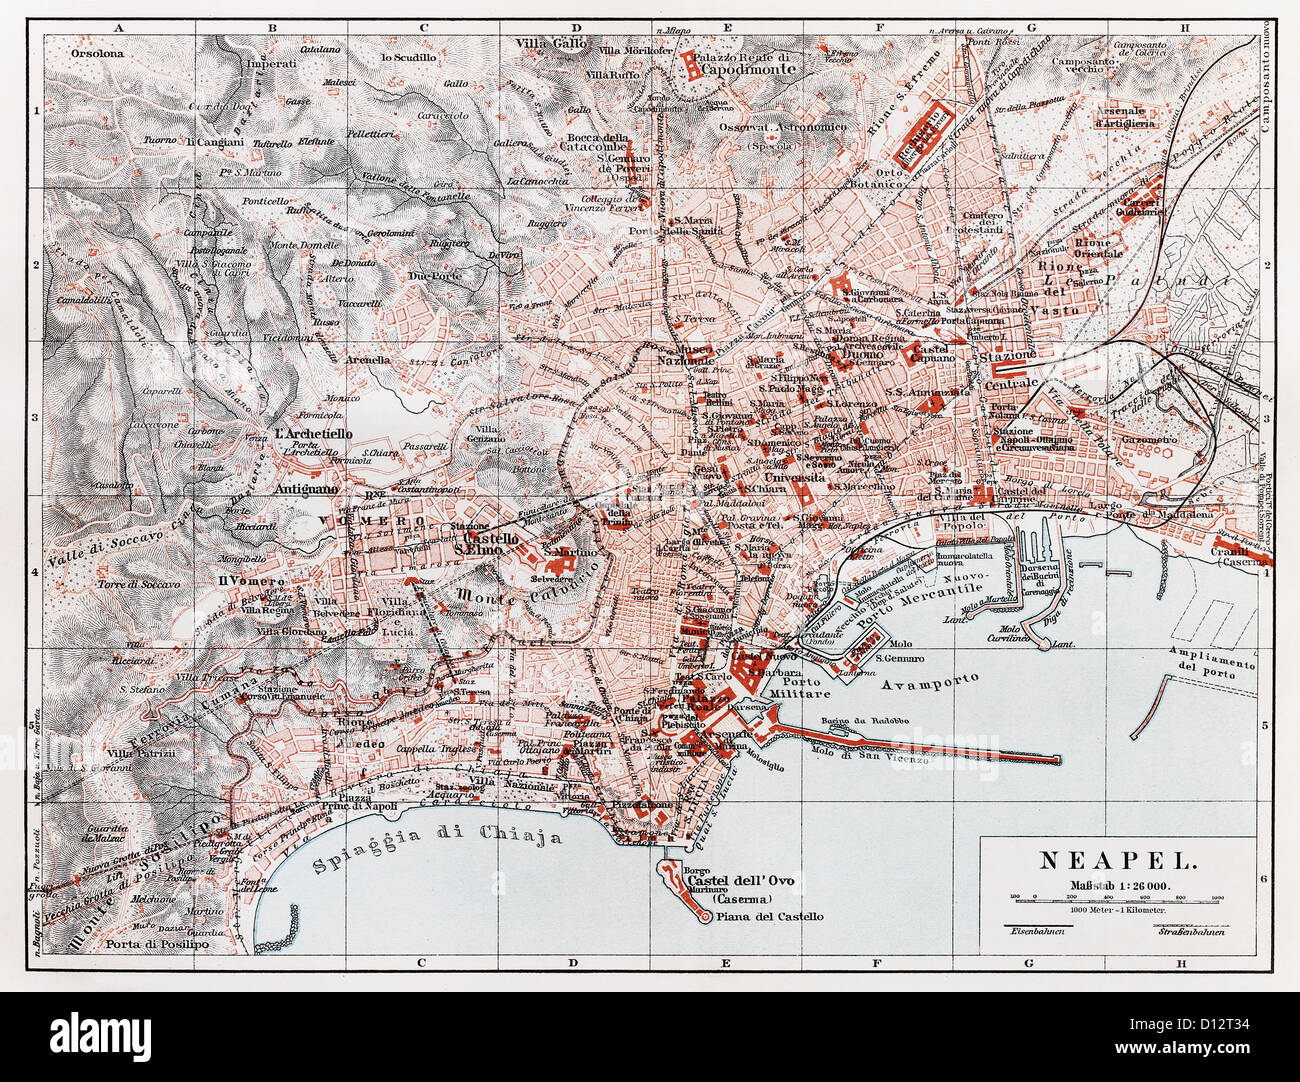 Vintage map of Naples (Napoli) at the end of 19th century - Stock Image